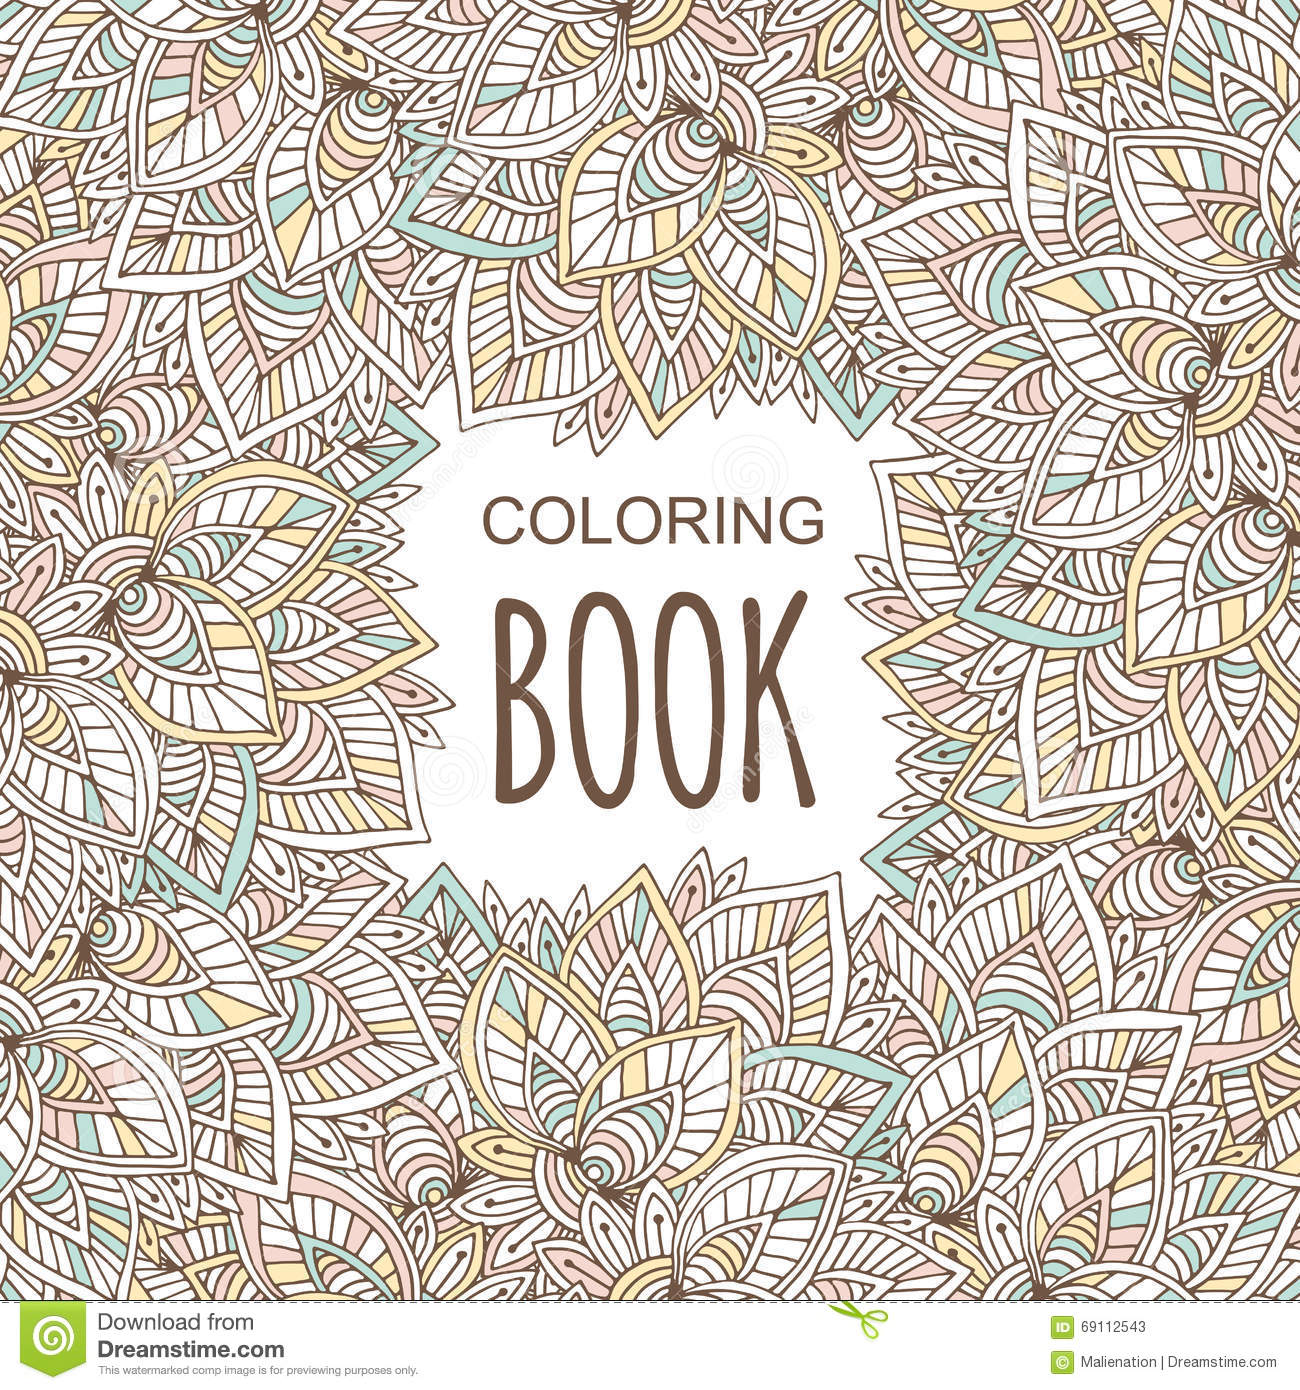 Coloring Book Cover In Unique Zentangle Style. Vector Hand Drawn ...